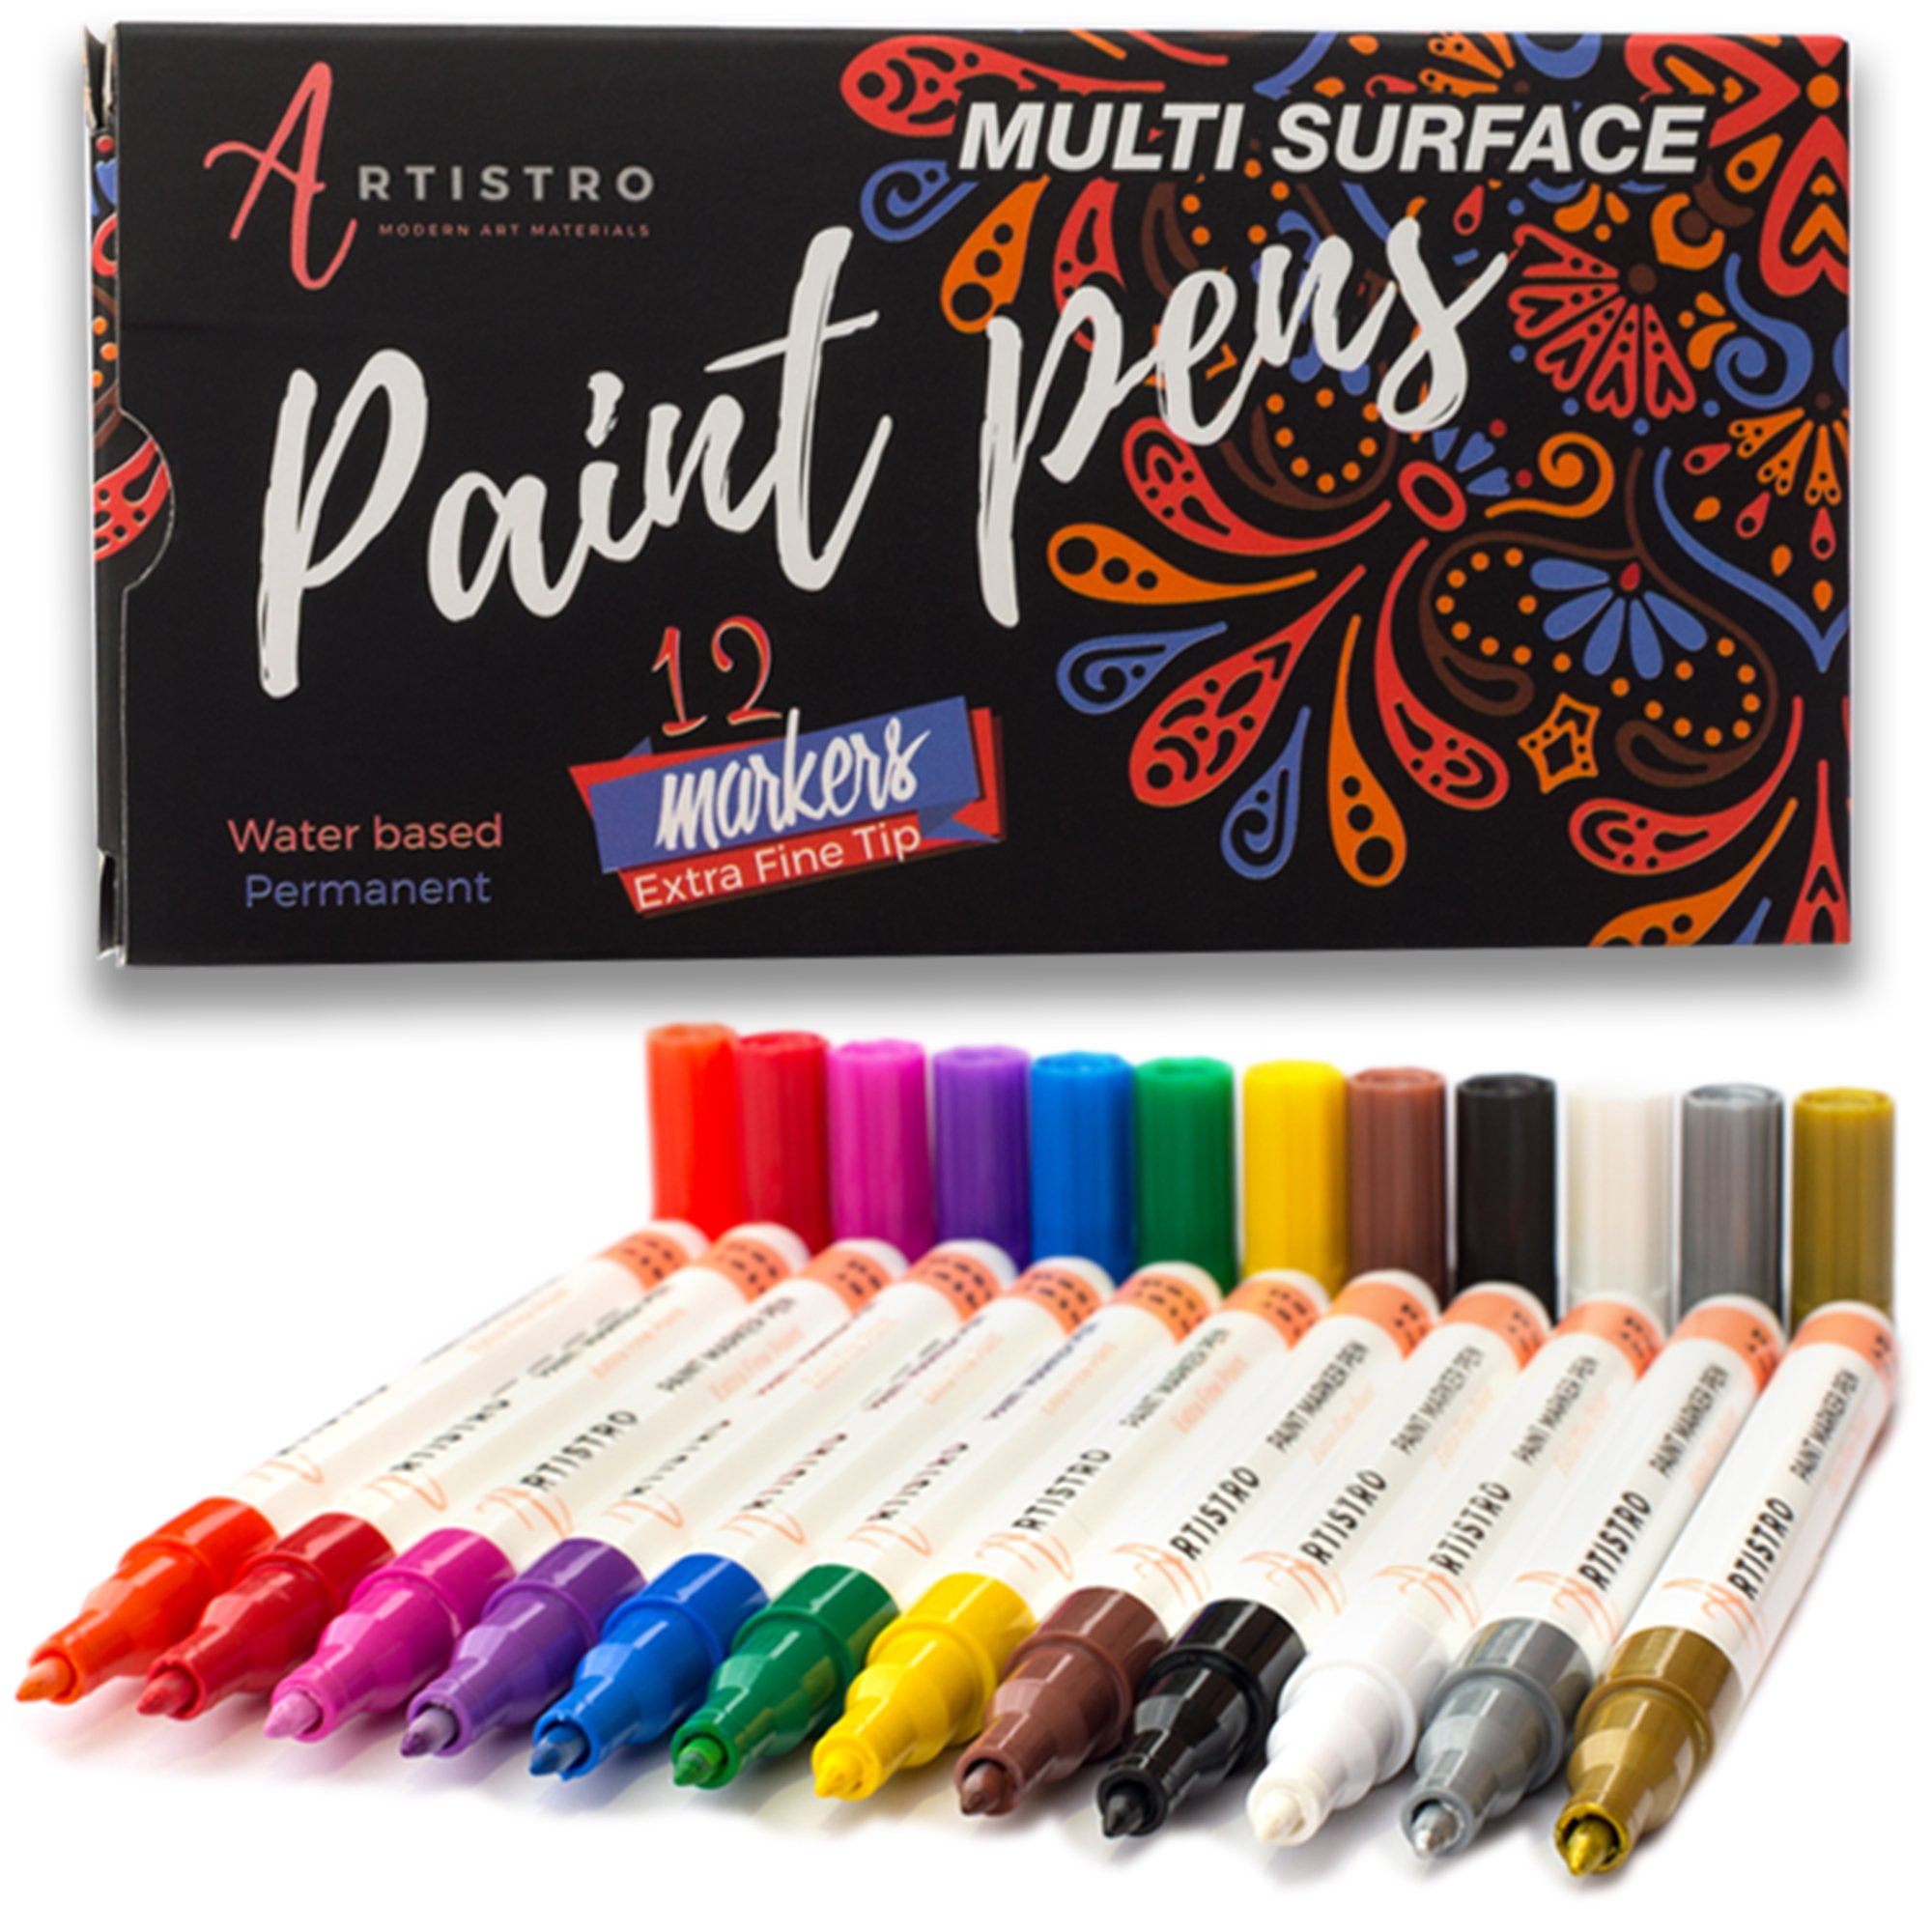 Paint pens for Rock Painting, Stone, Ceramic, Glass. Set of 12 Vibrant Colors. (Extra-fine Acrylic)